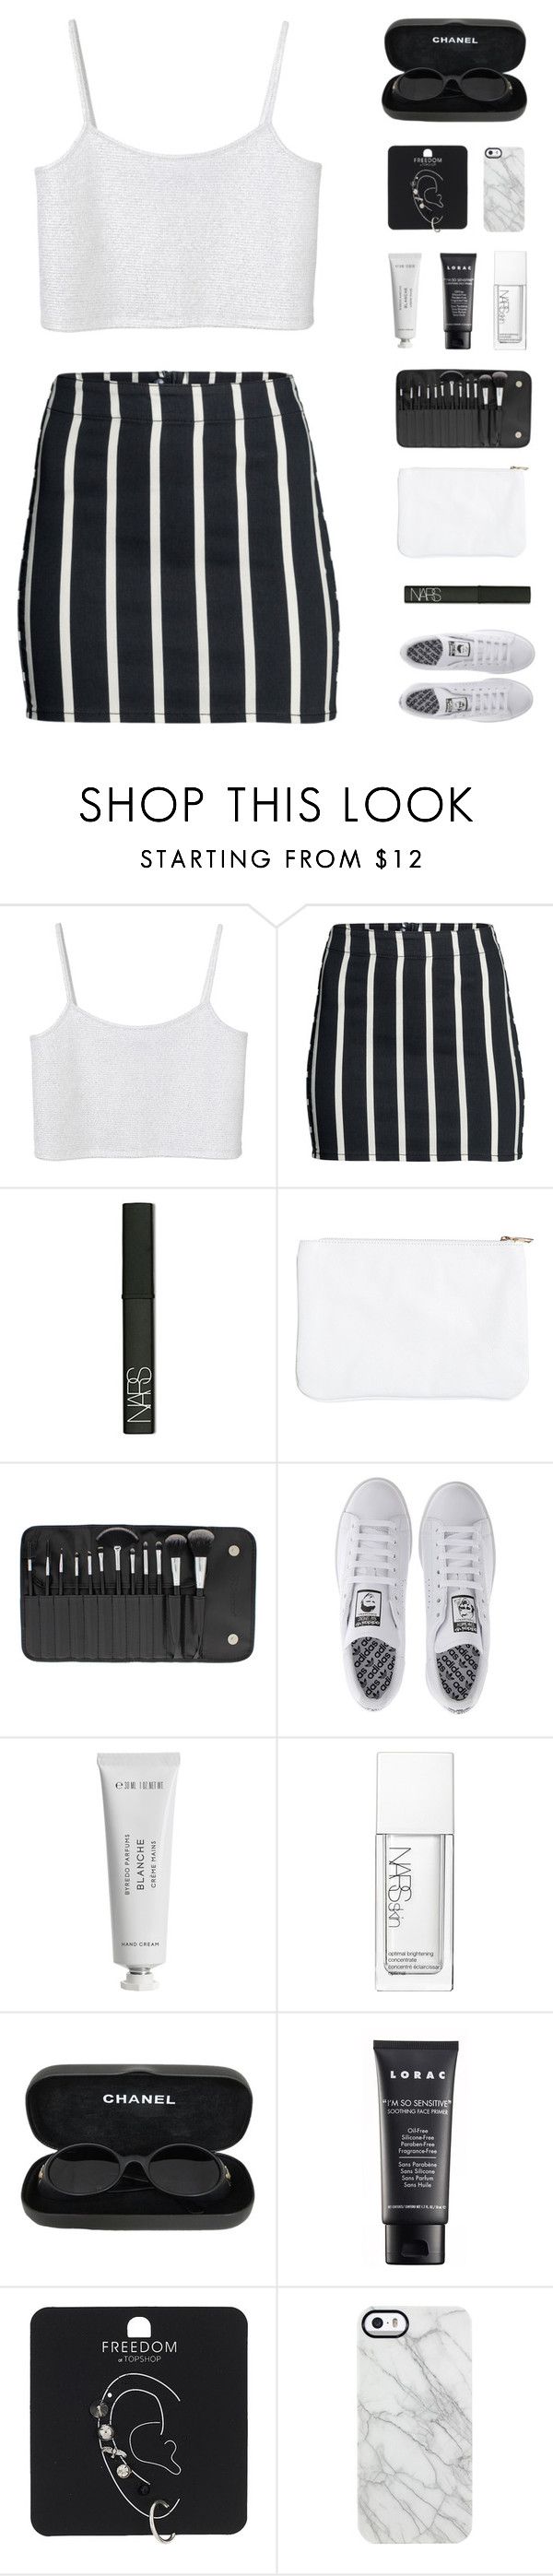 """""""Make the most of every day"""" by virgo-queen ❤ liked on Polyvore featuring Monki, H&M, NARS Cosmetics, BHCosmetics, adidas, Byredo, Chanel, LORAC, Topshop and Uncommon"""